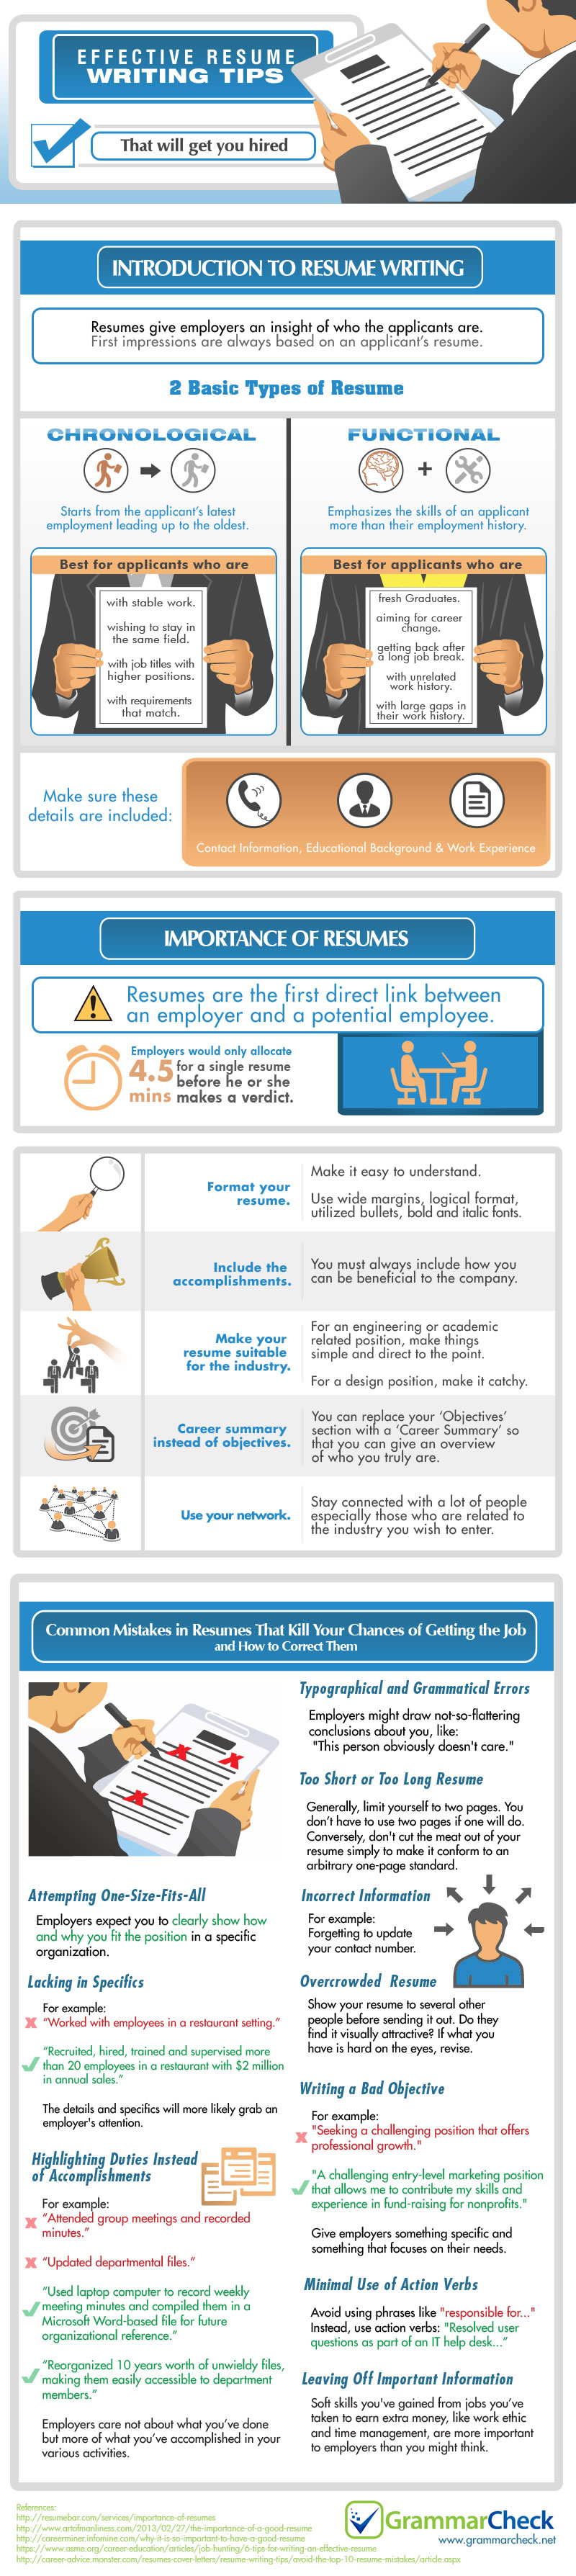 Writing Guide Effective Resume Writing Tips Infographic